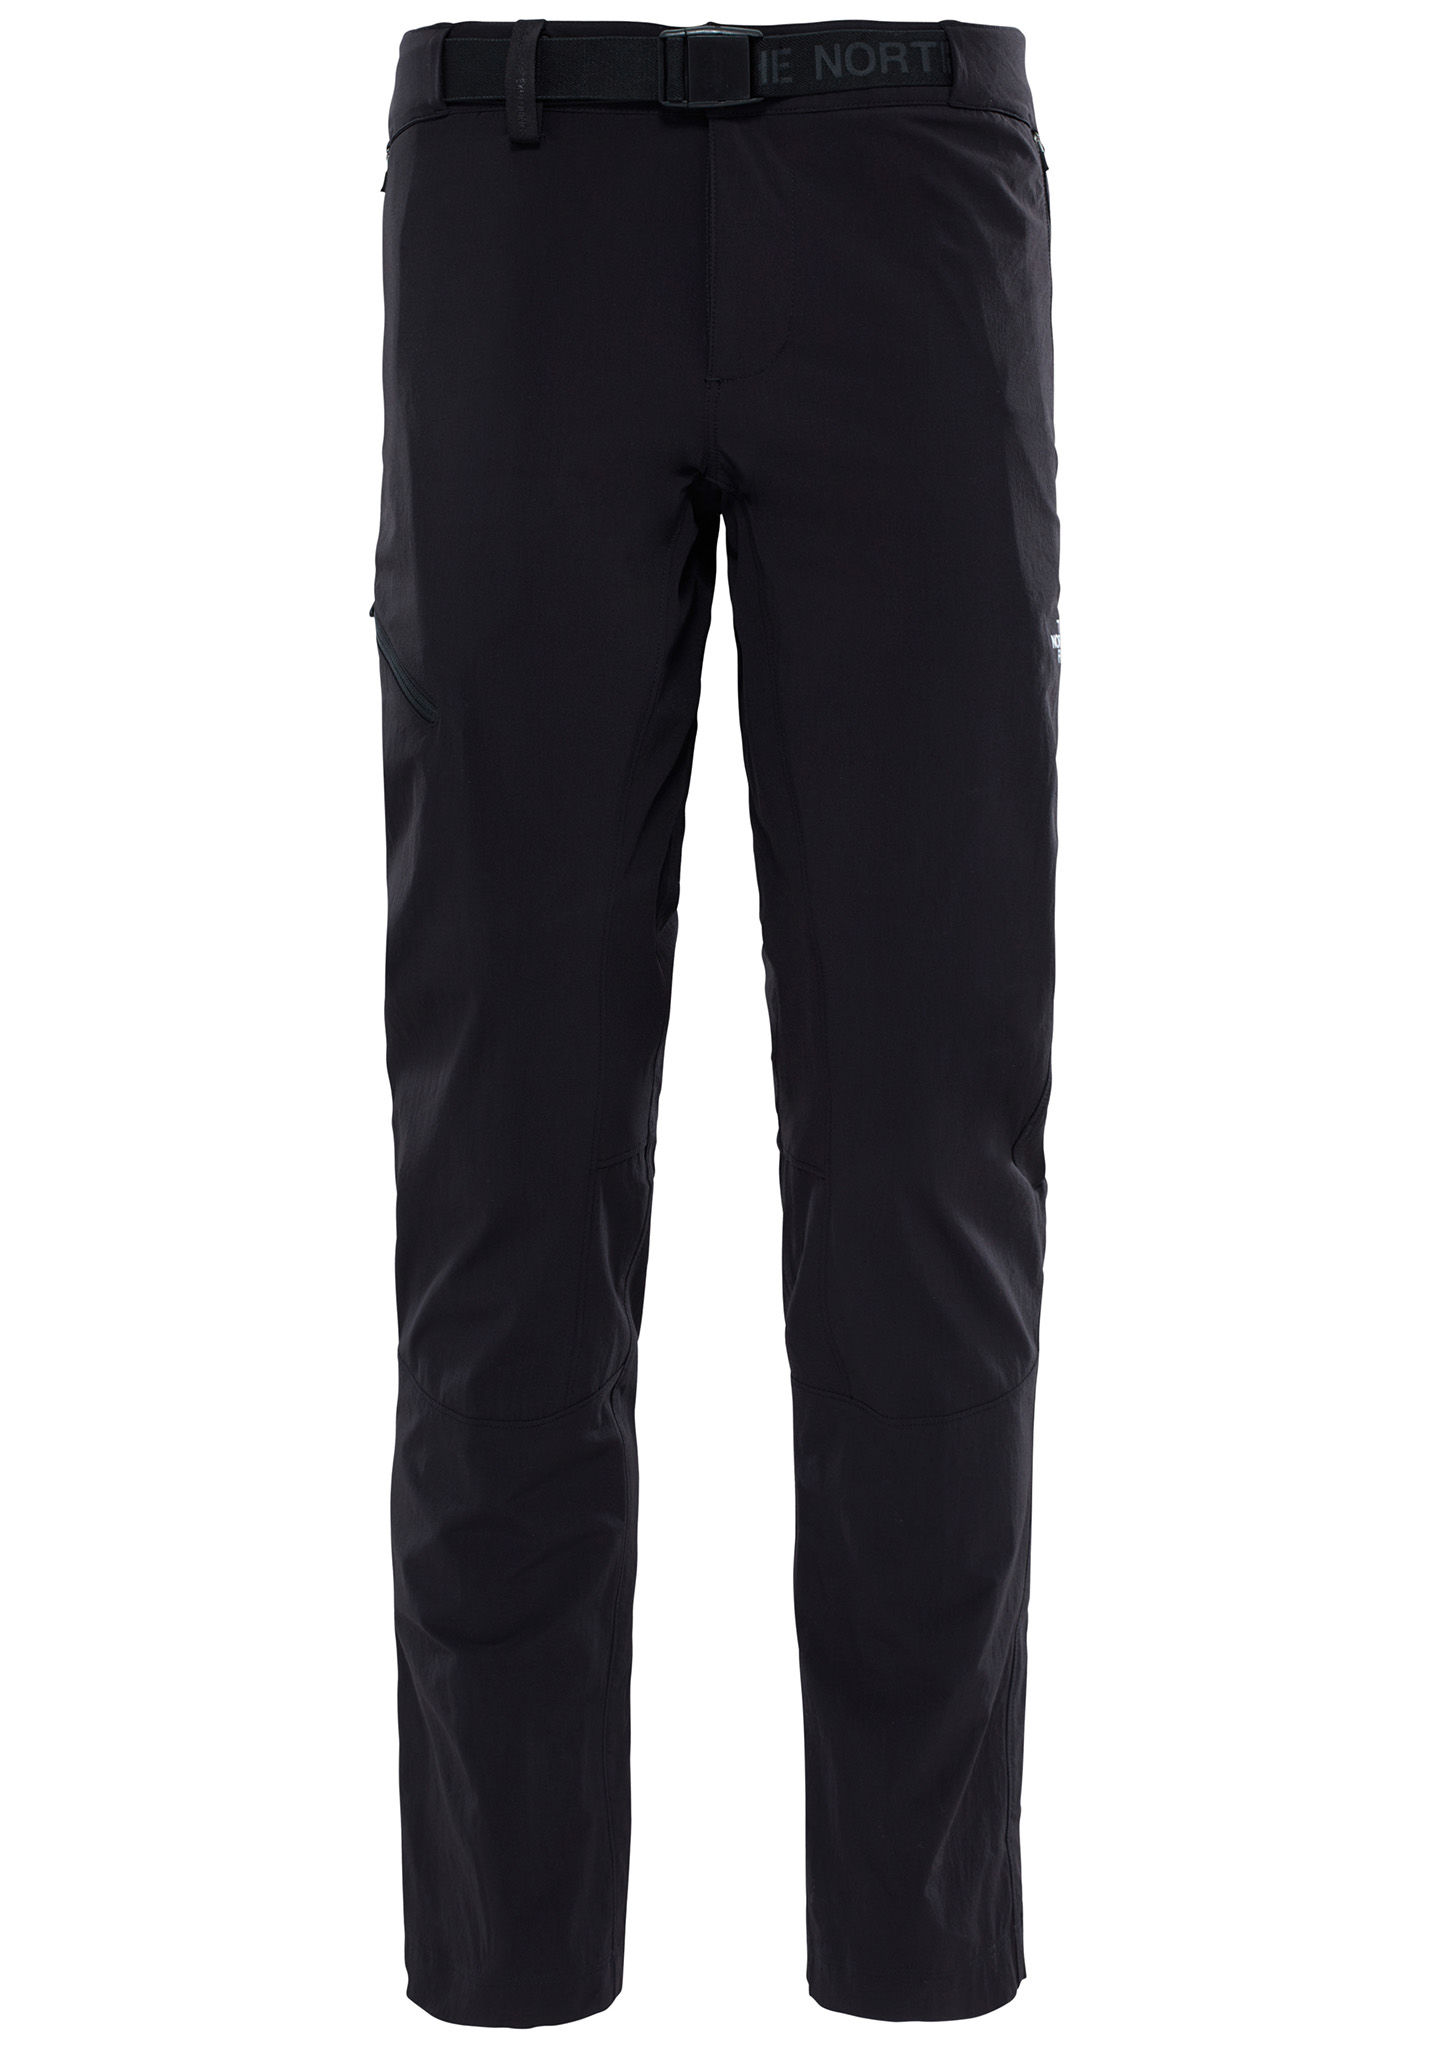 b4516157b THE NORTH FACE Speedlight - Outdoor Pants for Women - Black